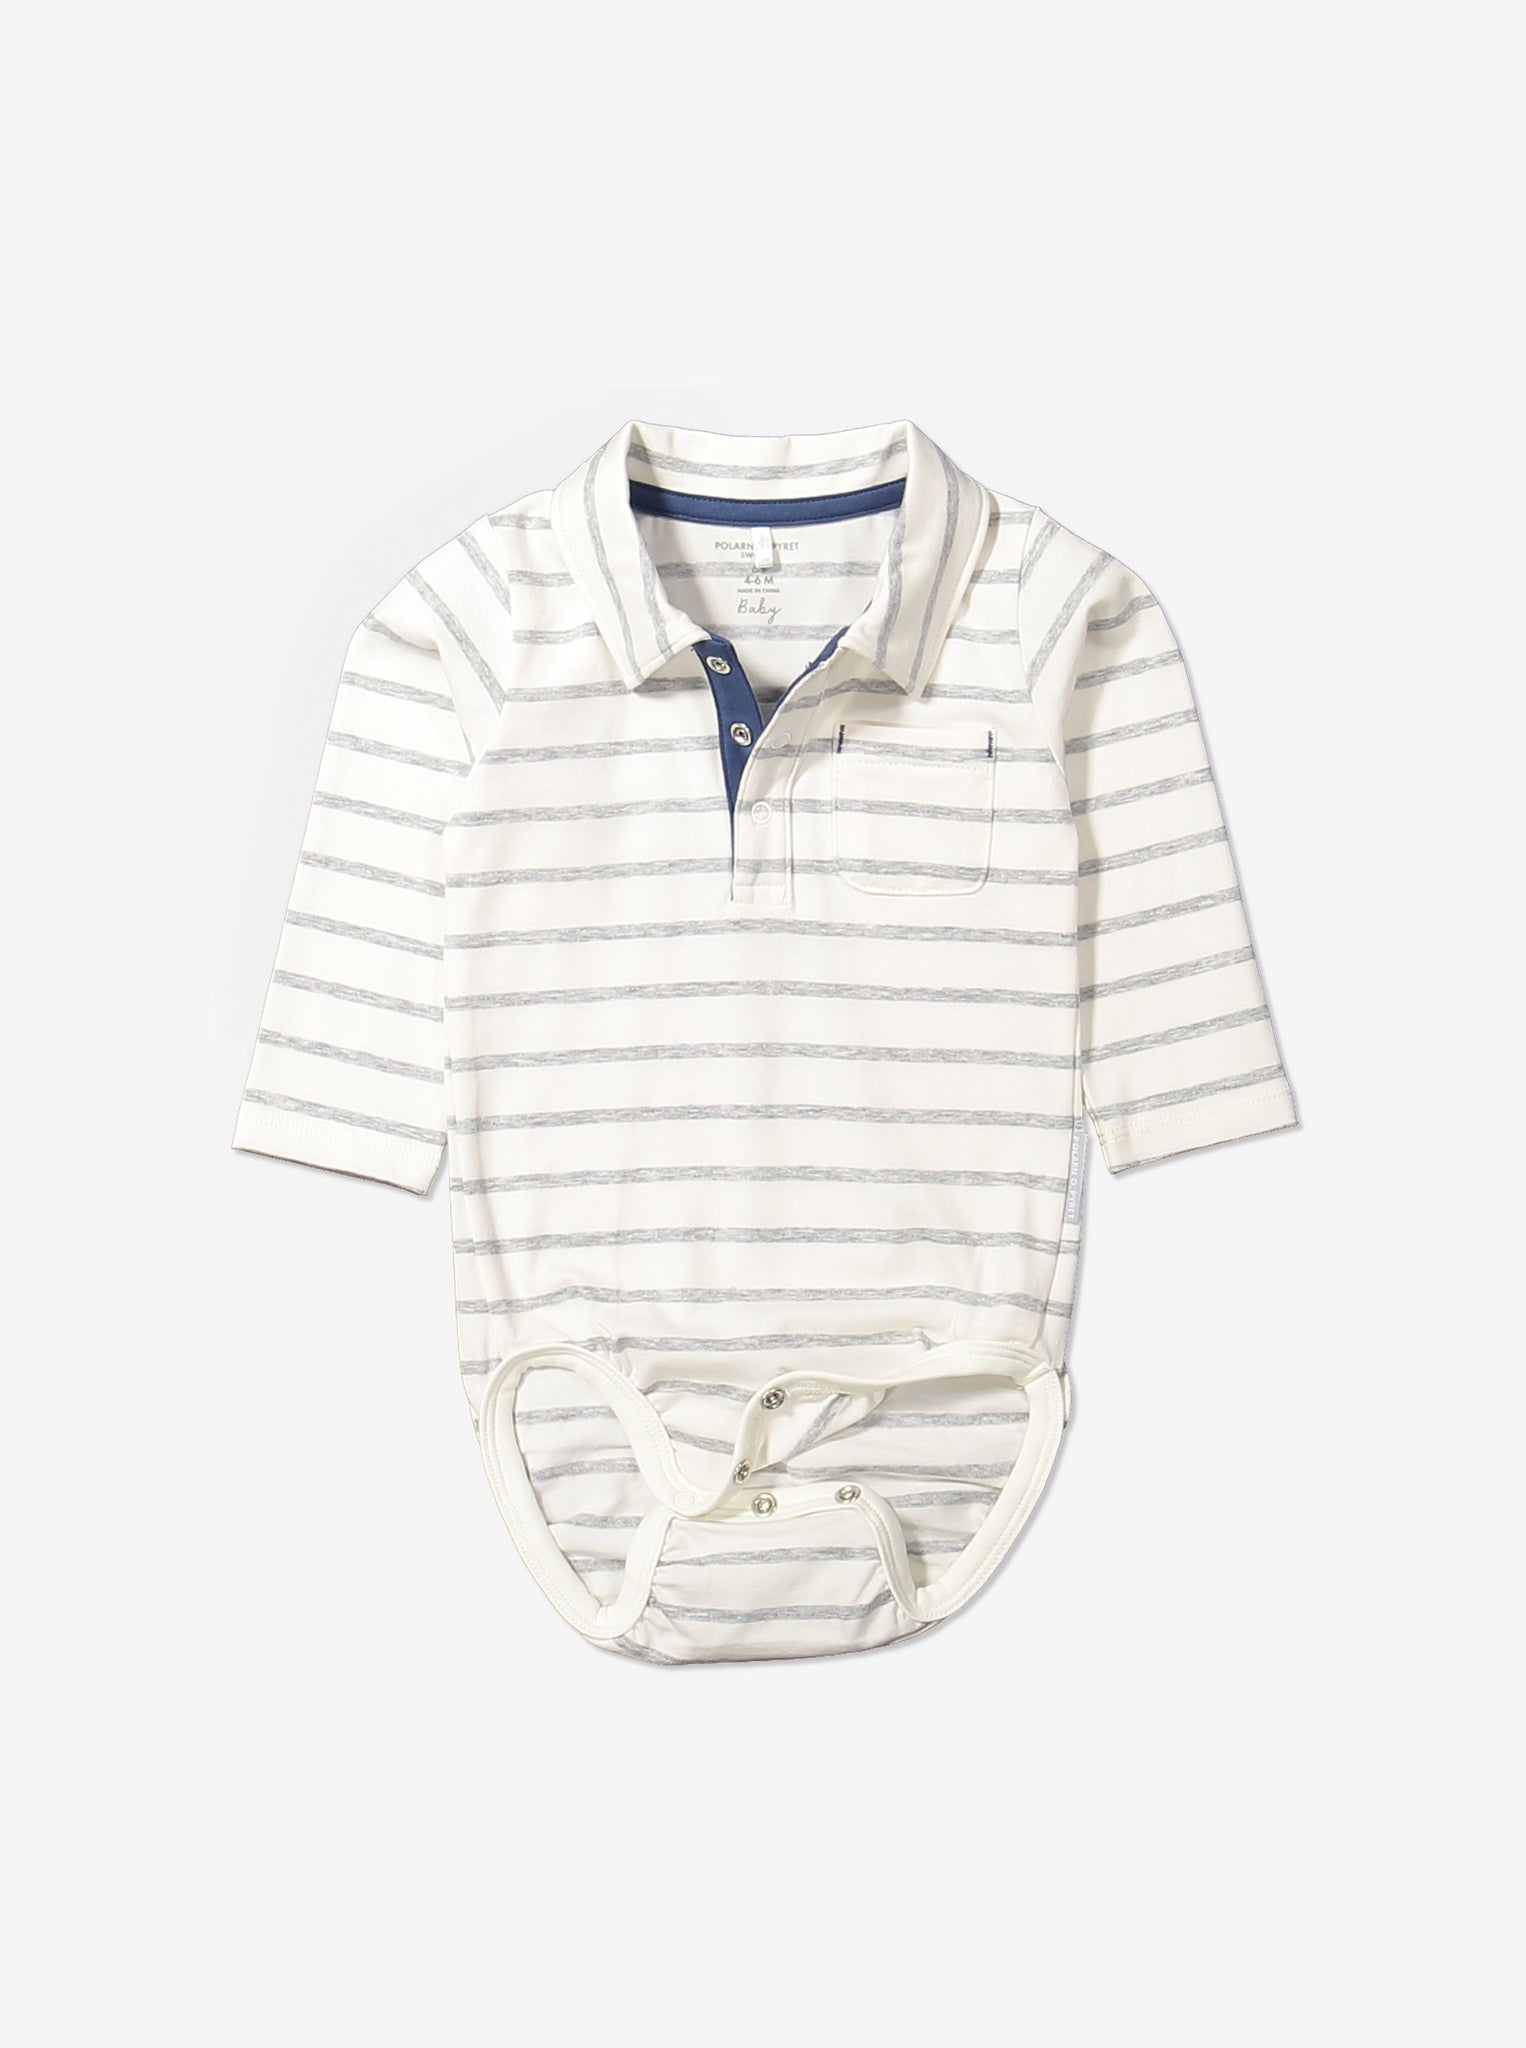 Wraparound Striped Shirt Baby Newborn Babygrow 0-6months Natural Boy